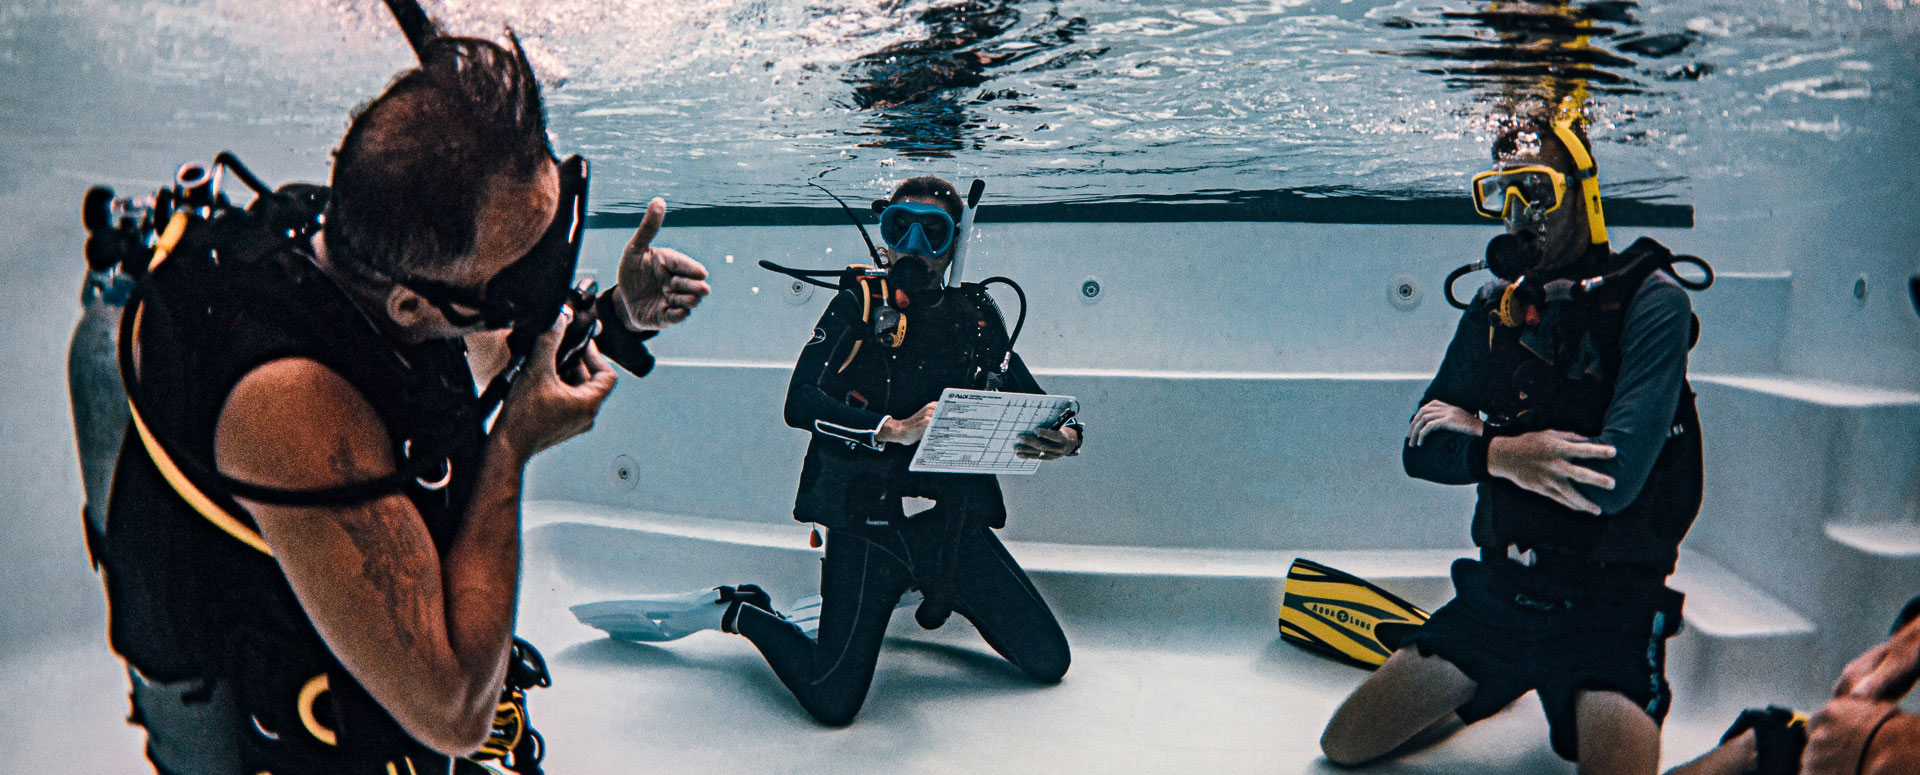 PADI Pro Course at Ban's Diving Koh Tao